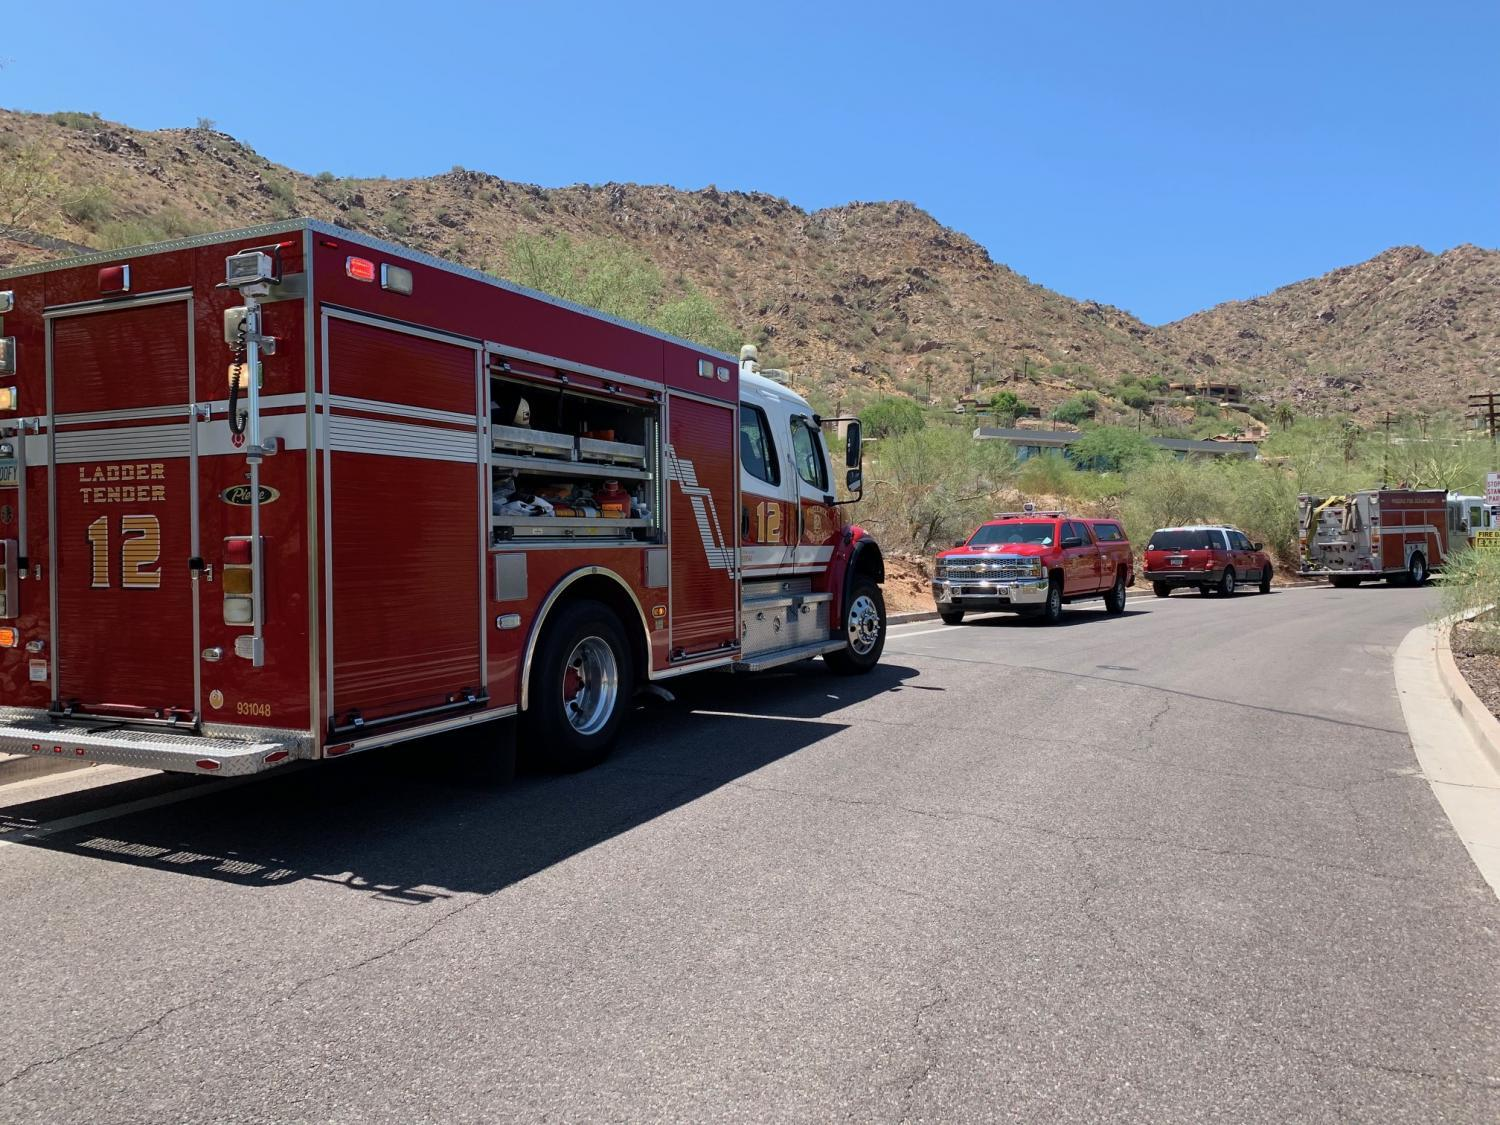 Camelback Mountain rescue